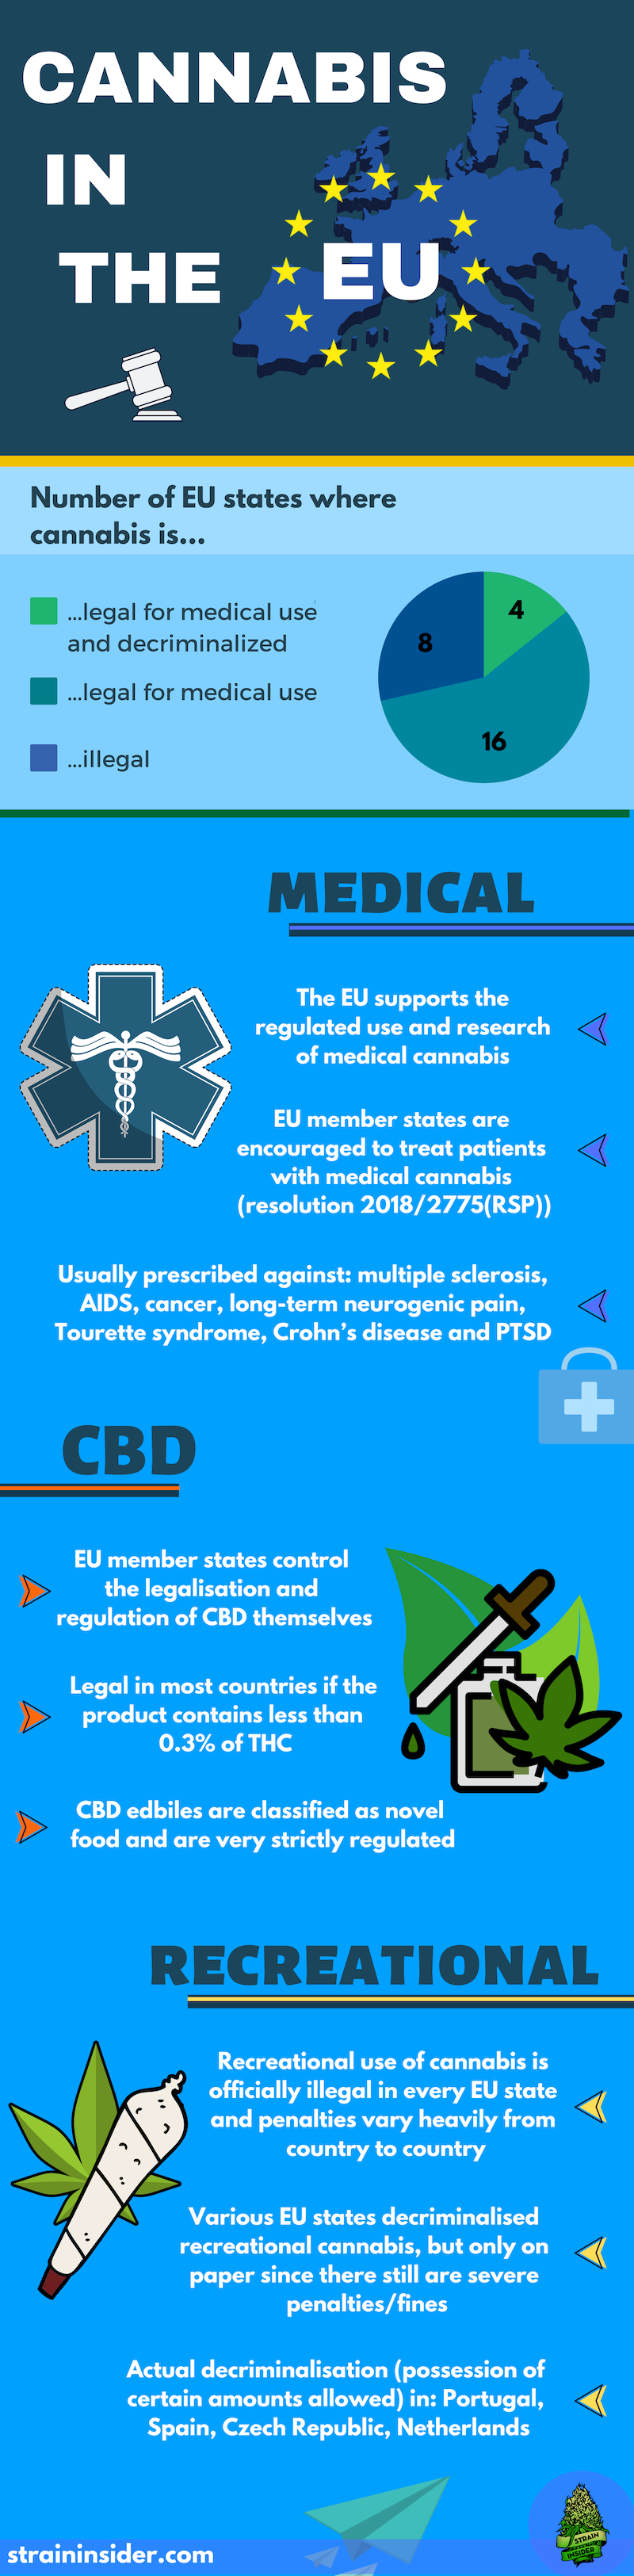 The Legal Situation of Cannabis in the European Union in 2019